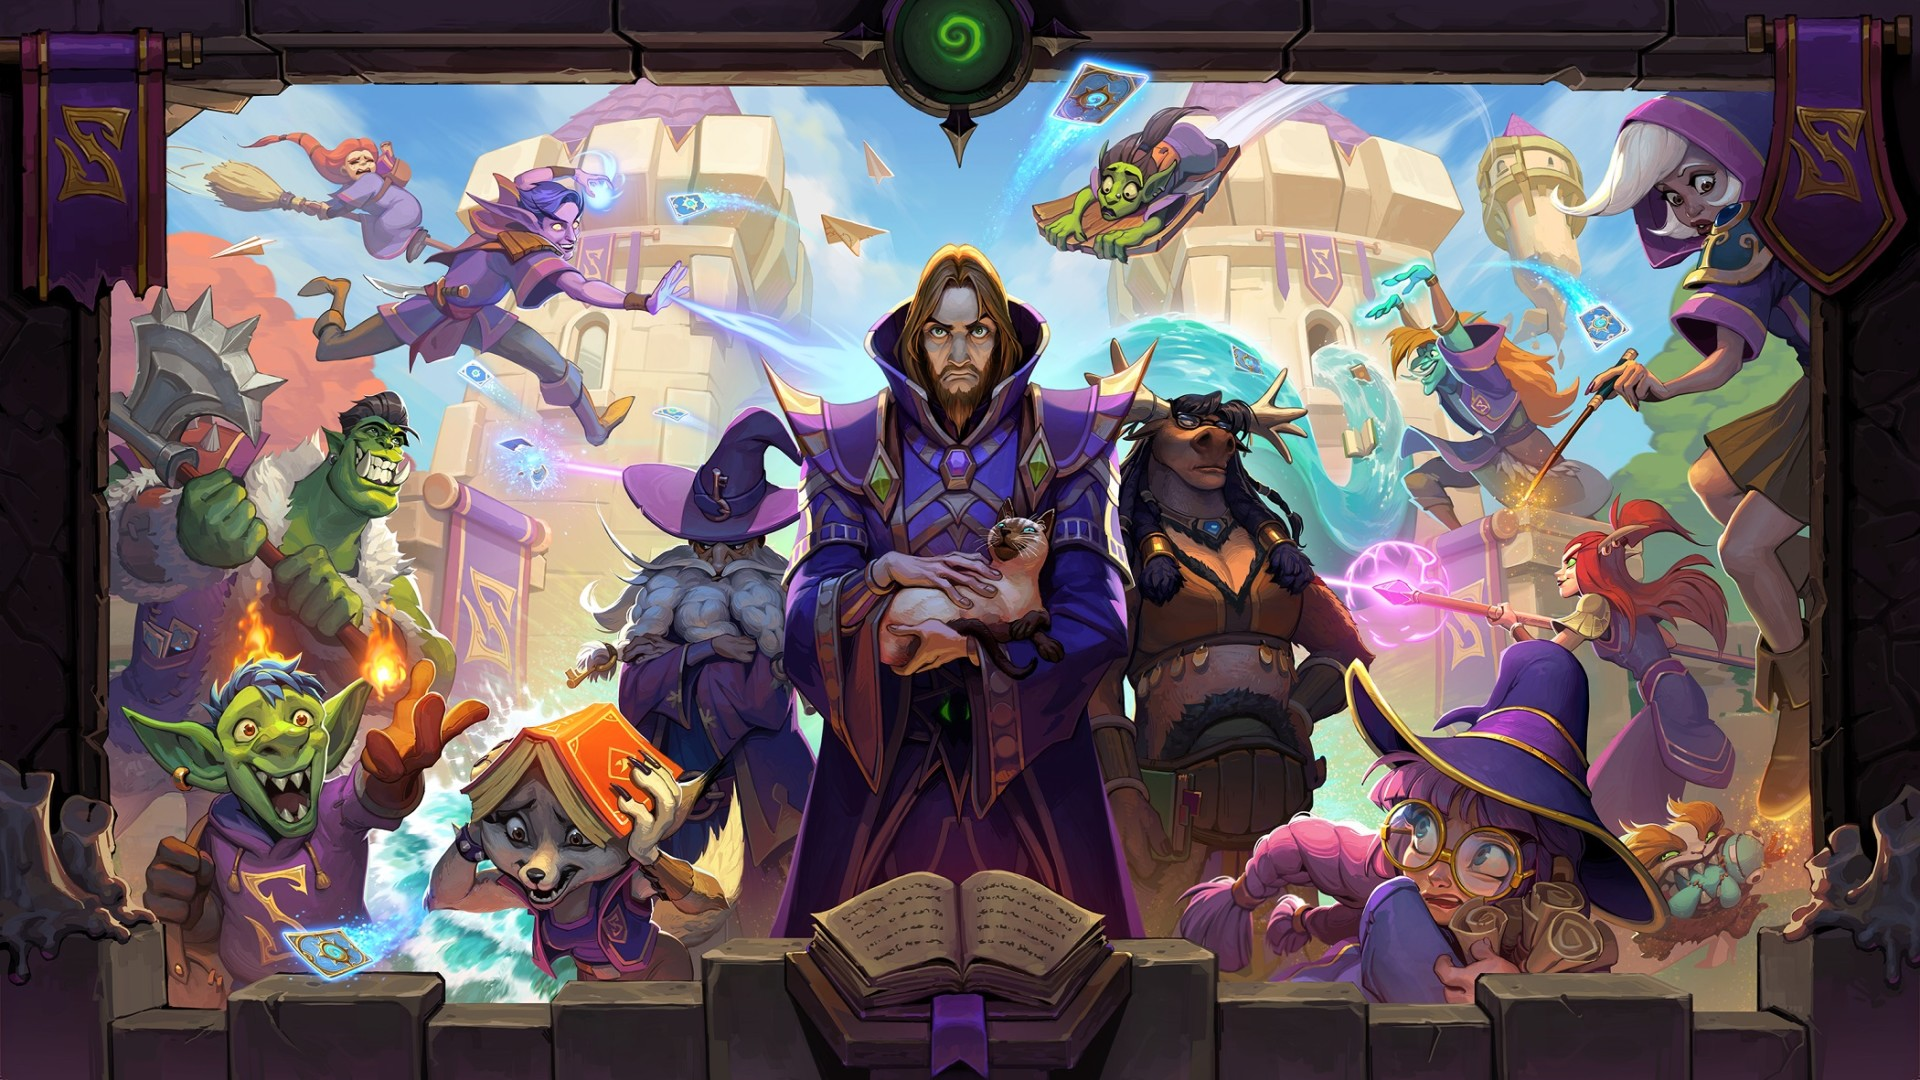 Upcoming Hearthstone Scholomance Academy patch brings nerfs and Battlegrounds changes